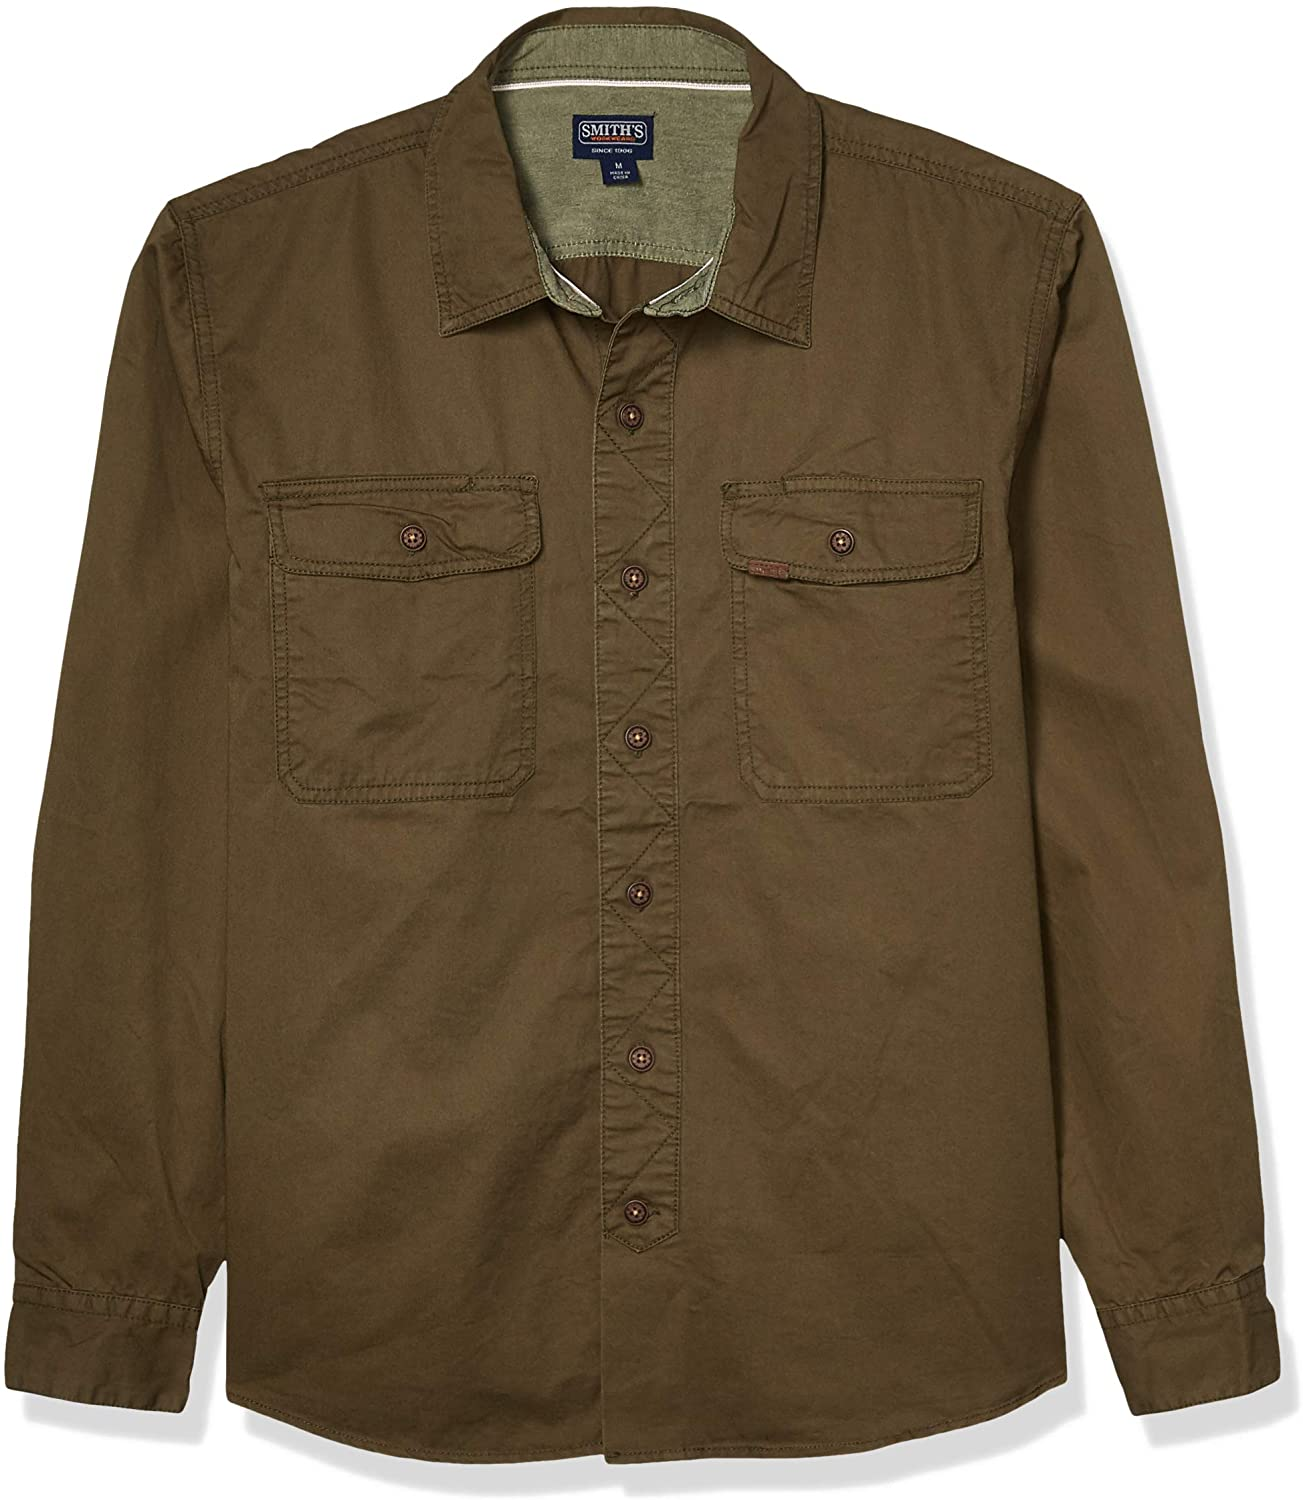 Smith's Workwear Men's Cotton Twill Wovens Shirt